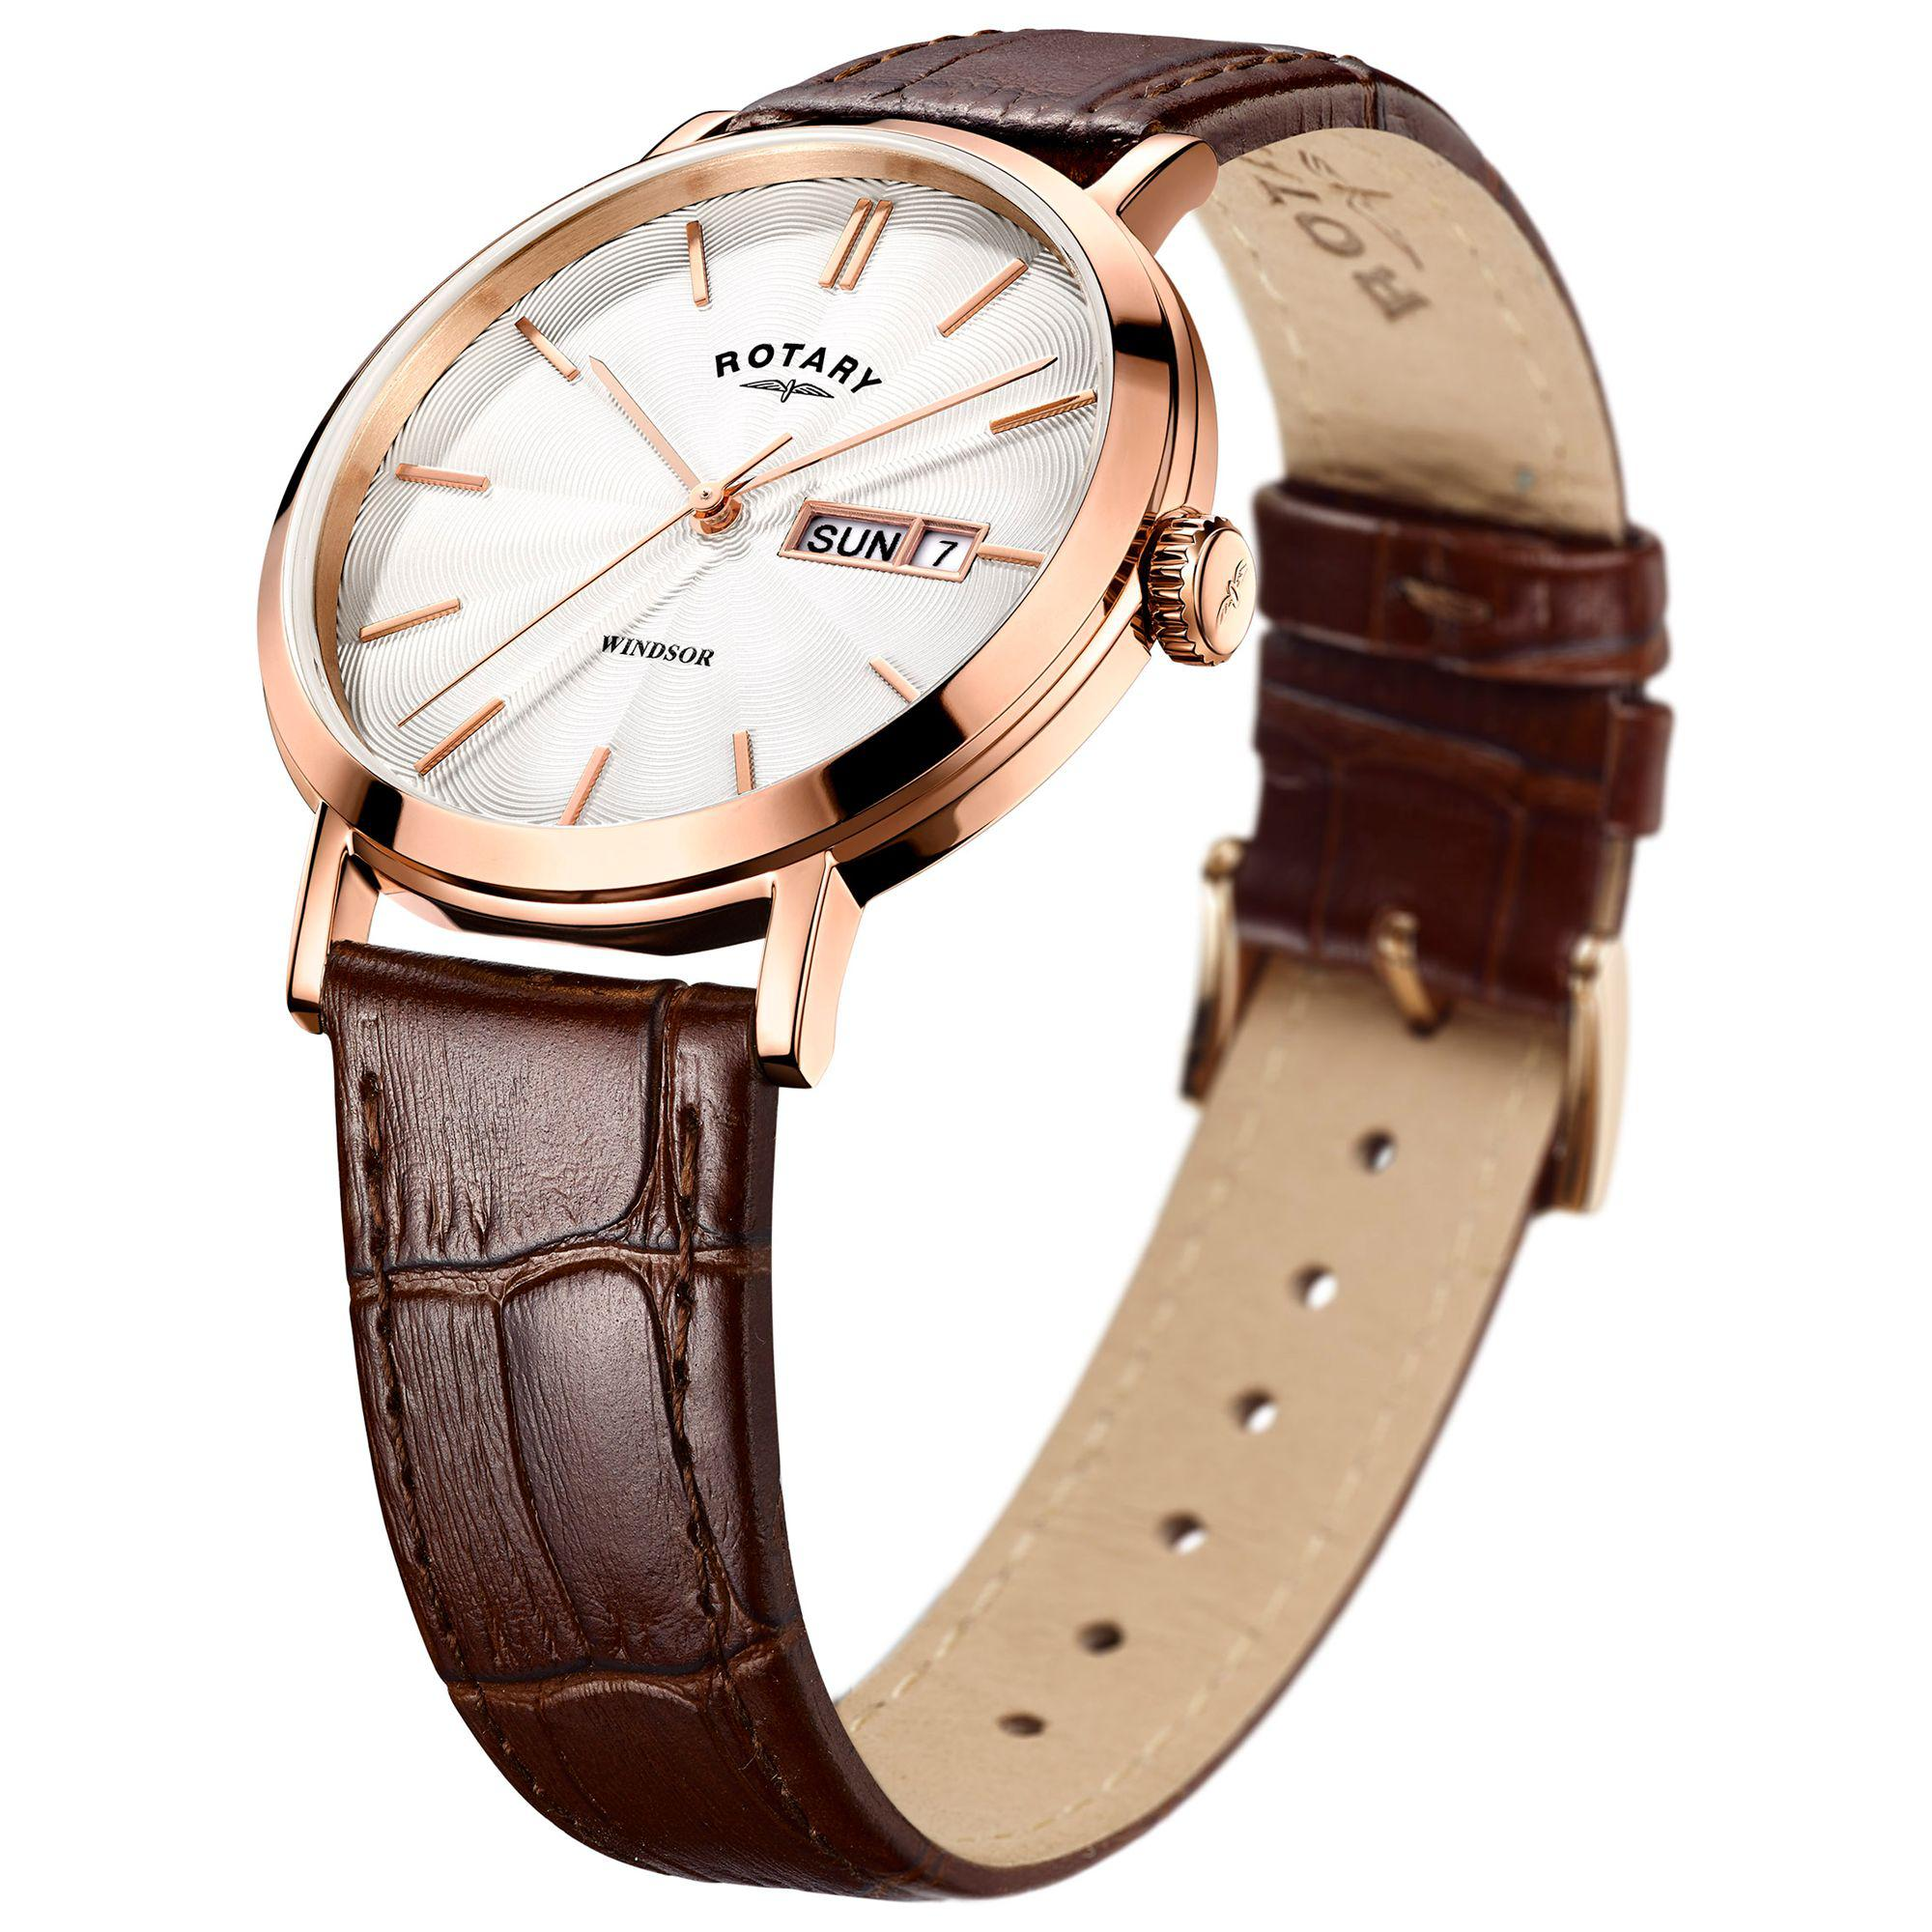 bdd1c8c0a088c John Lewis Rotary Gs05304 02 Men s Windsor Day Date Leather Strap ...